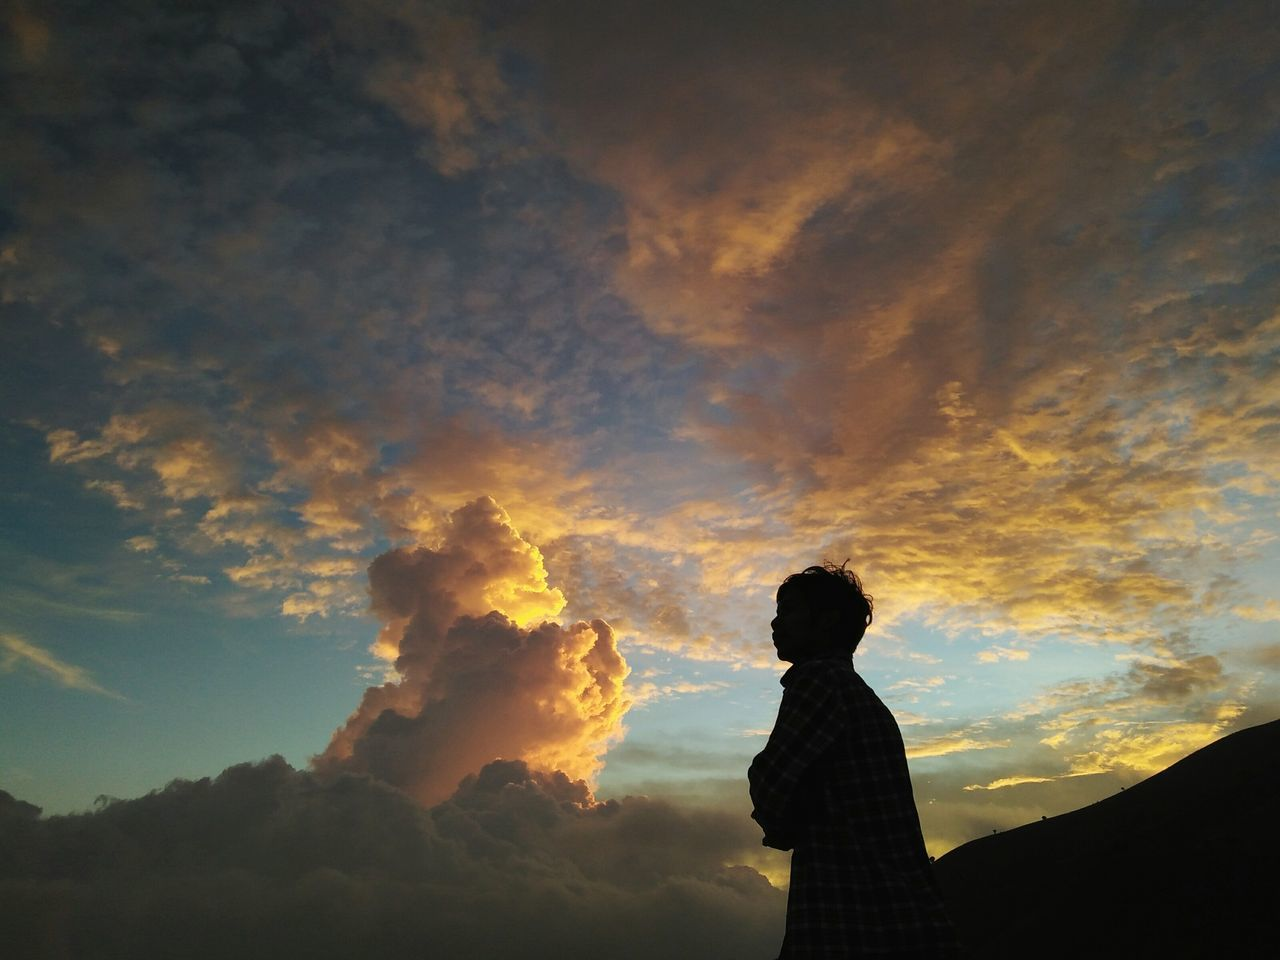 real people, cloud - sky, sky, silhouette, one person, nature, standing, leisure activity, beauty in nature, lifestyles, scenics, low angle view, outdoors, sunset, women, tranquility, day, people